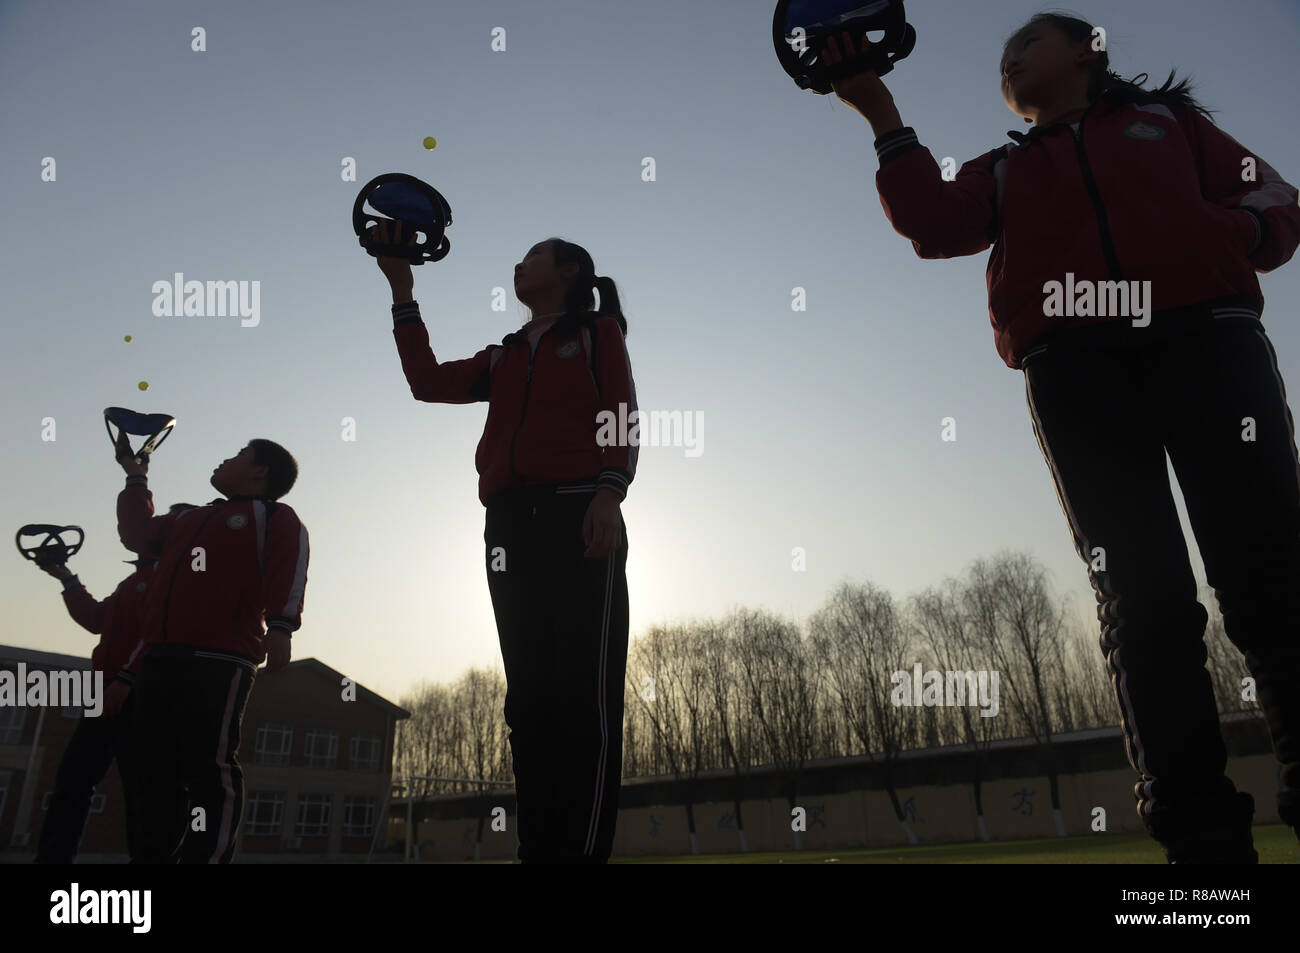 Gu'an, China's Hebei Province. 14th Dec, 2018. Students practise for a ball game at Nanzhaogezhuang primary school in Gu'an County, north China's Hebei Province, Dec. 14, 2018. Various extracurricular classes are provided in Nanzhaogezhuang primary school to enrich the school life of students. Credit: Lu Peng/Xinhua/Alamy Live News - Stock Image